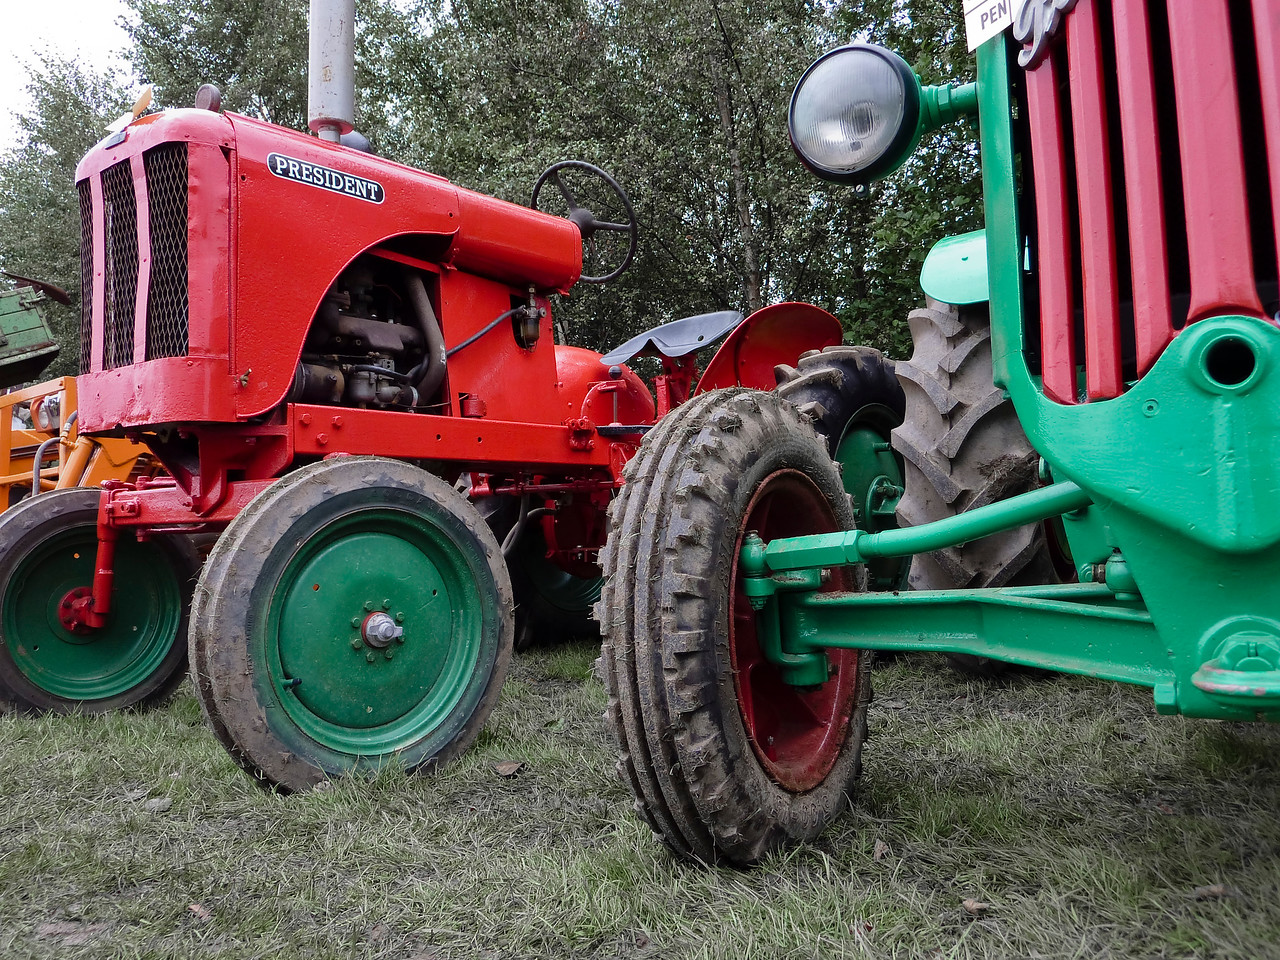 President Tractor